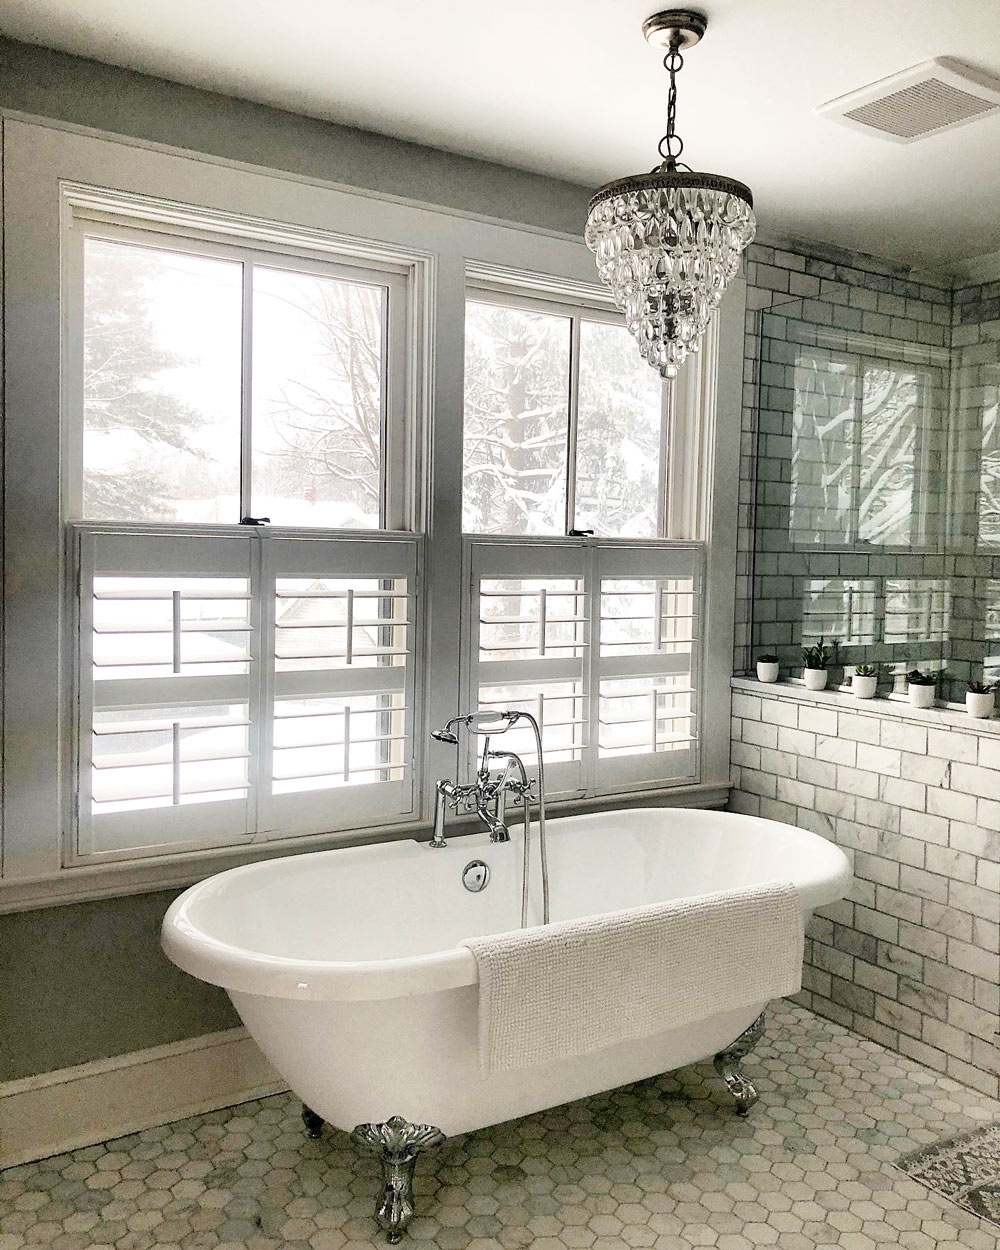 A tiled bathroom with clawfoot tub and cafe height plantation shutters in the windows.